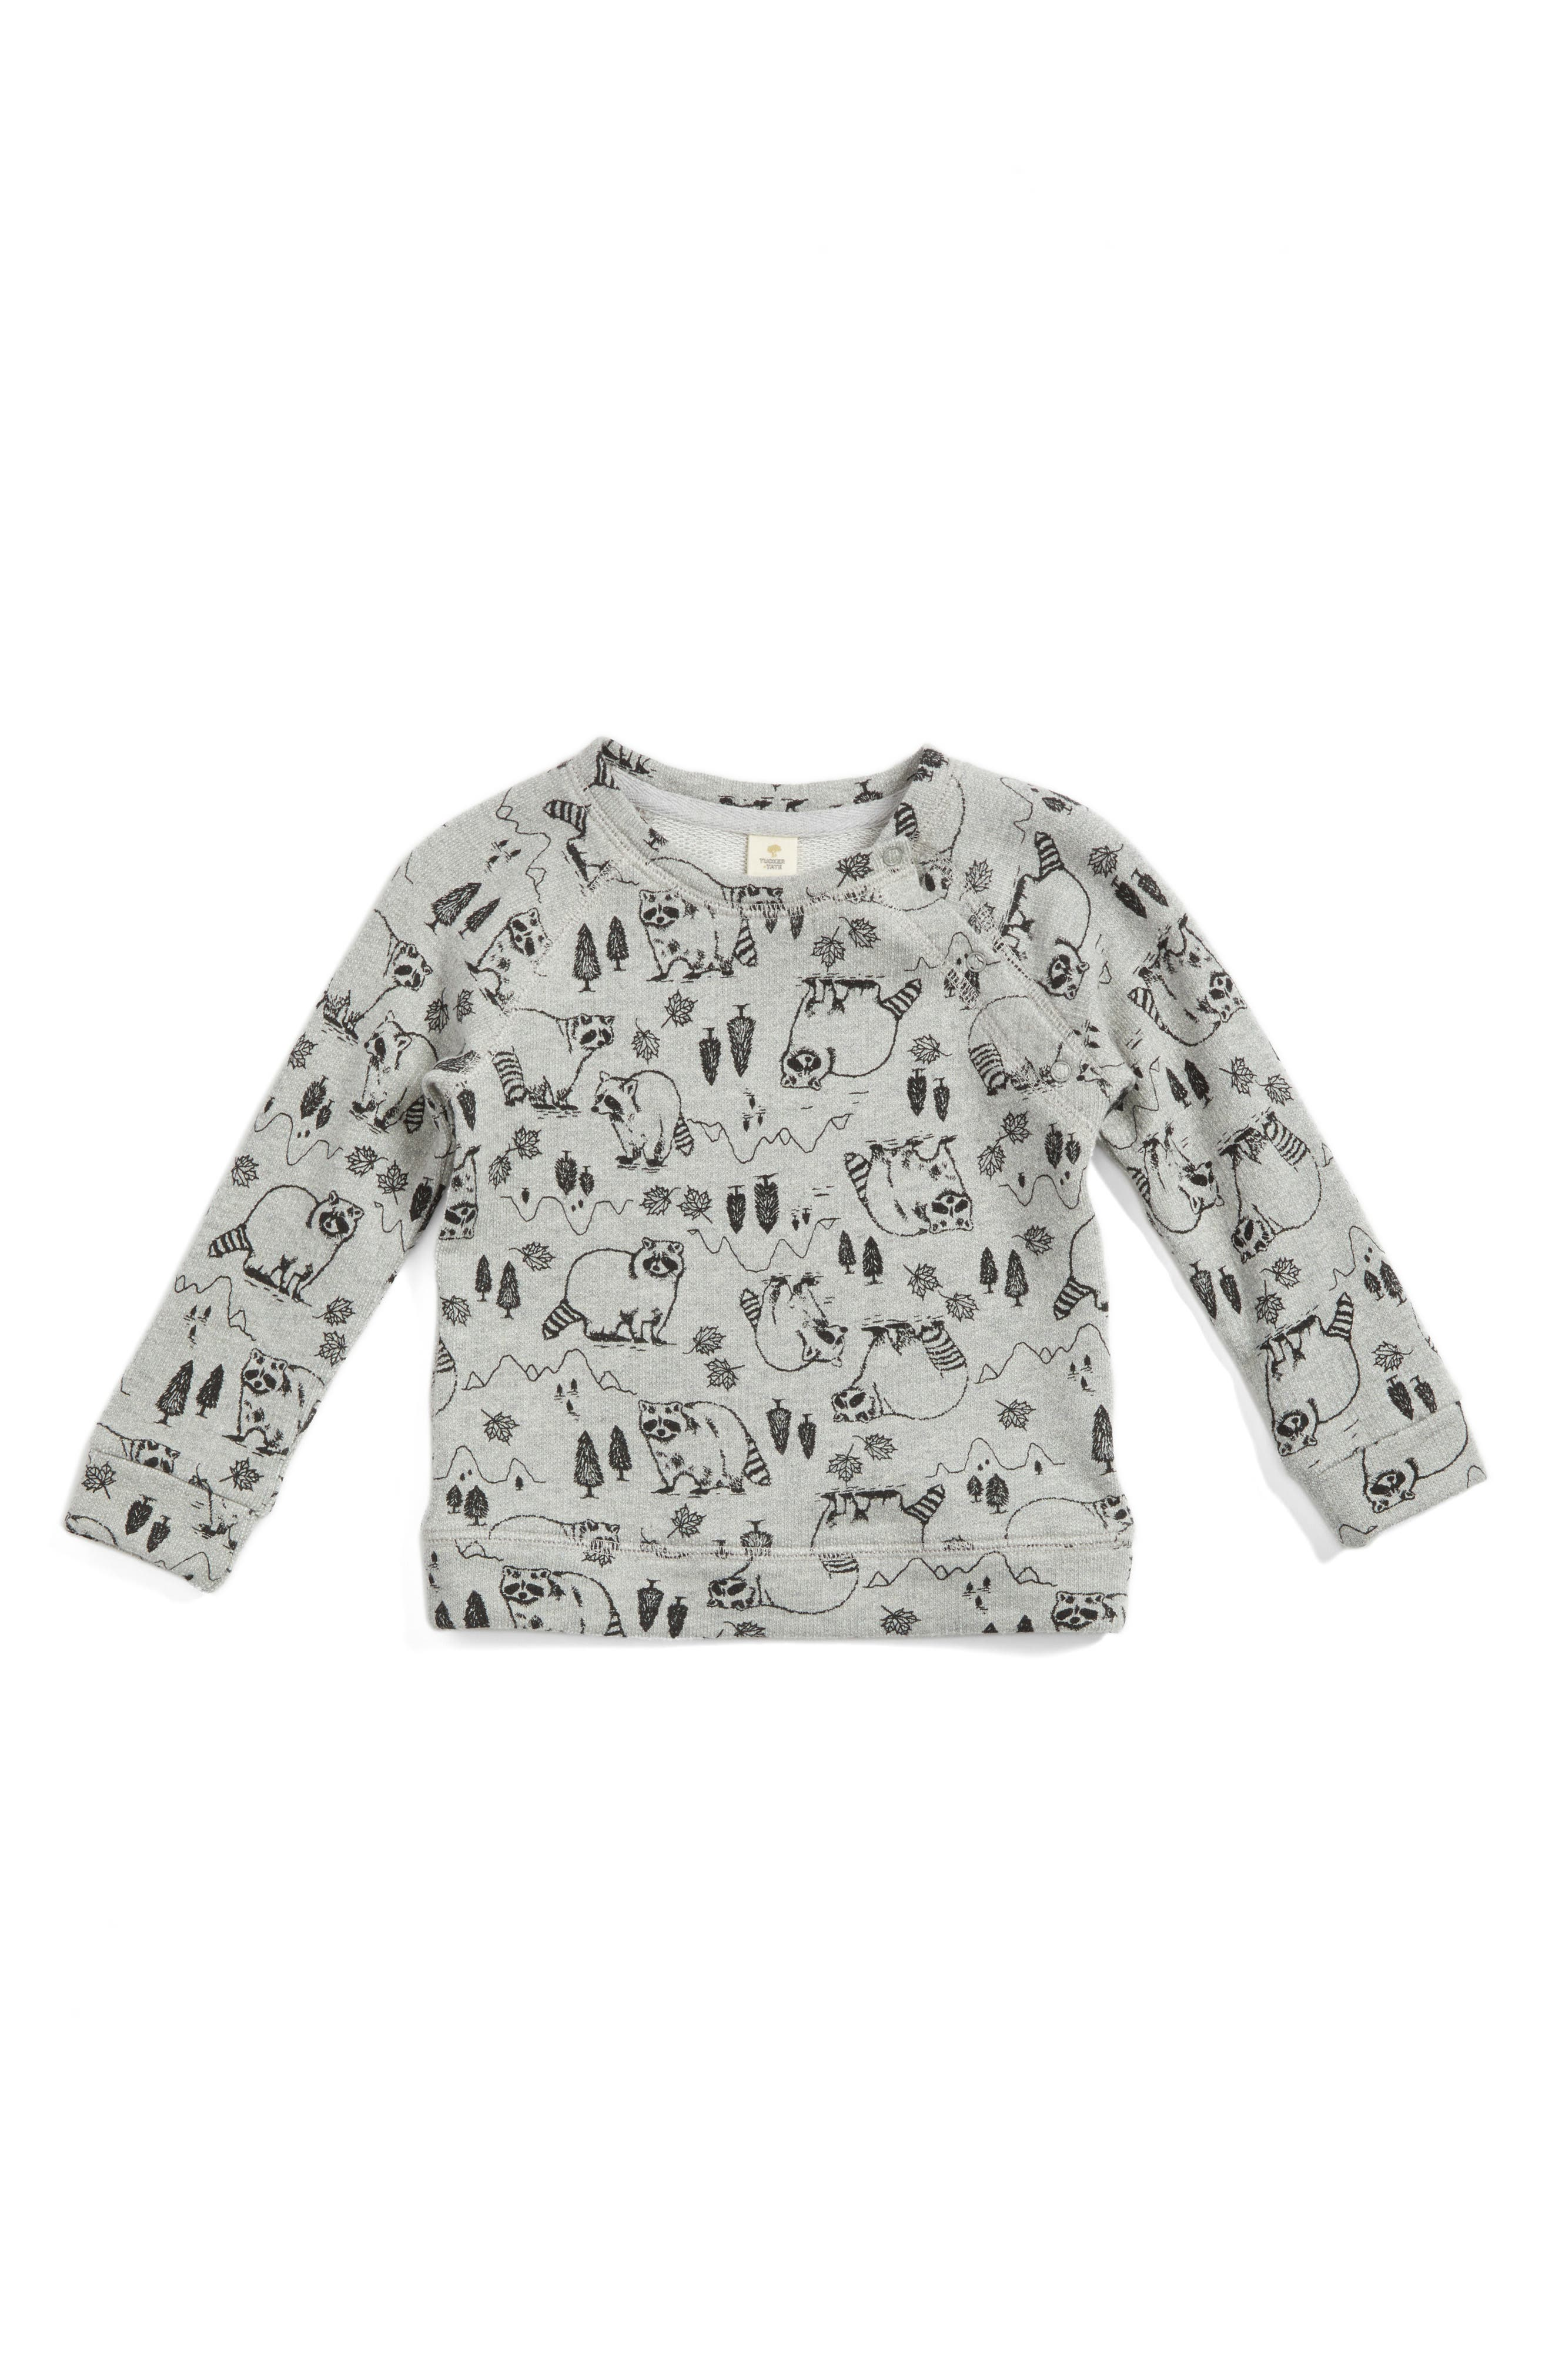 Woodland Raccoon Print Top,                             Main thumbnail 1, color,                             050